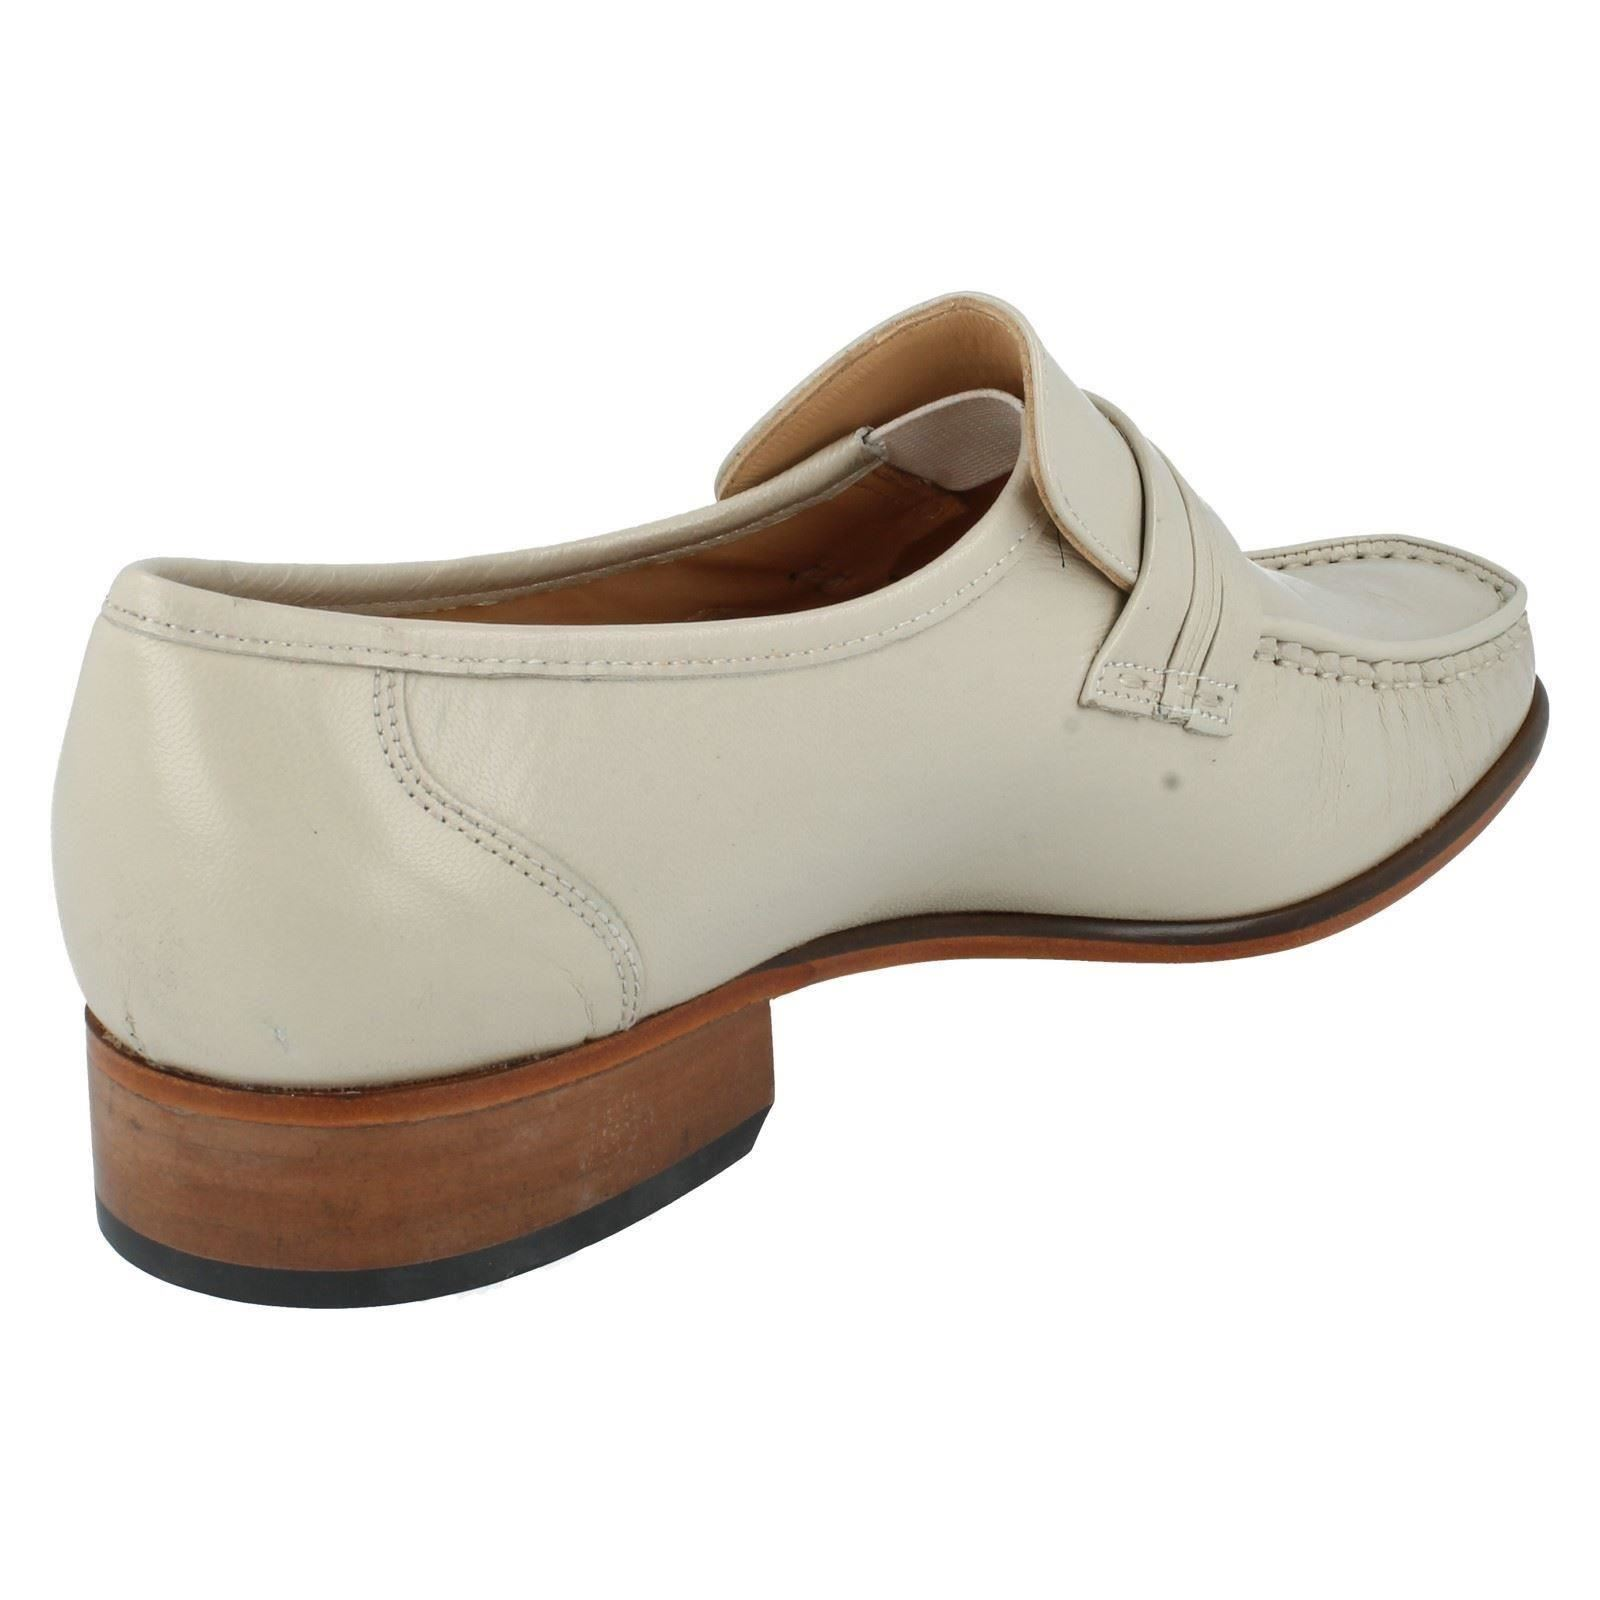 Mens Grenson Feathermaster Formal Leather Shoes Greclapham Fitting Fitting Fitting G 53c975